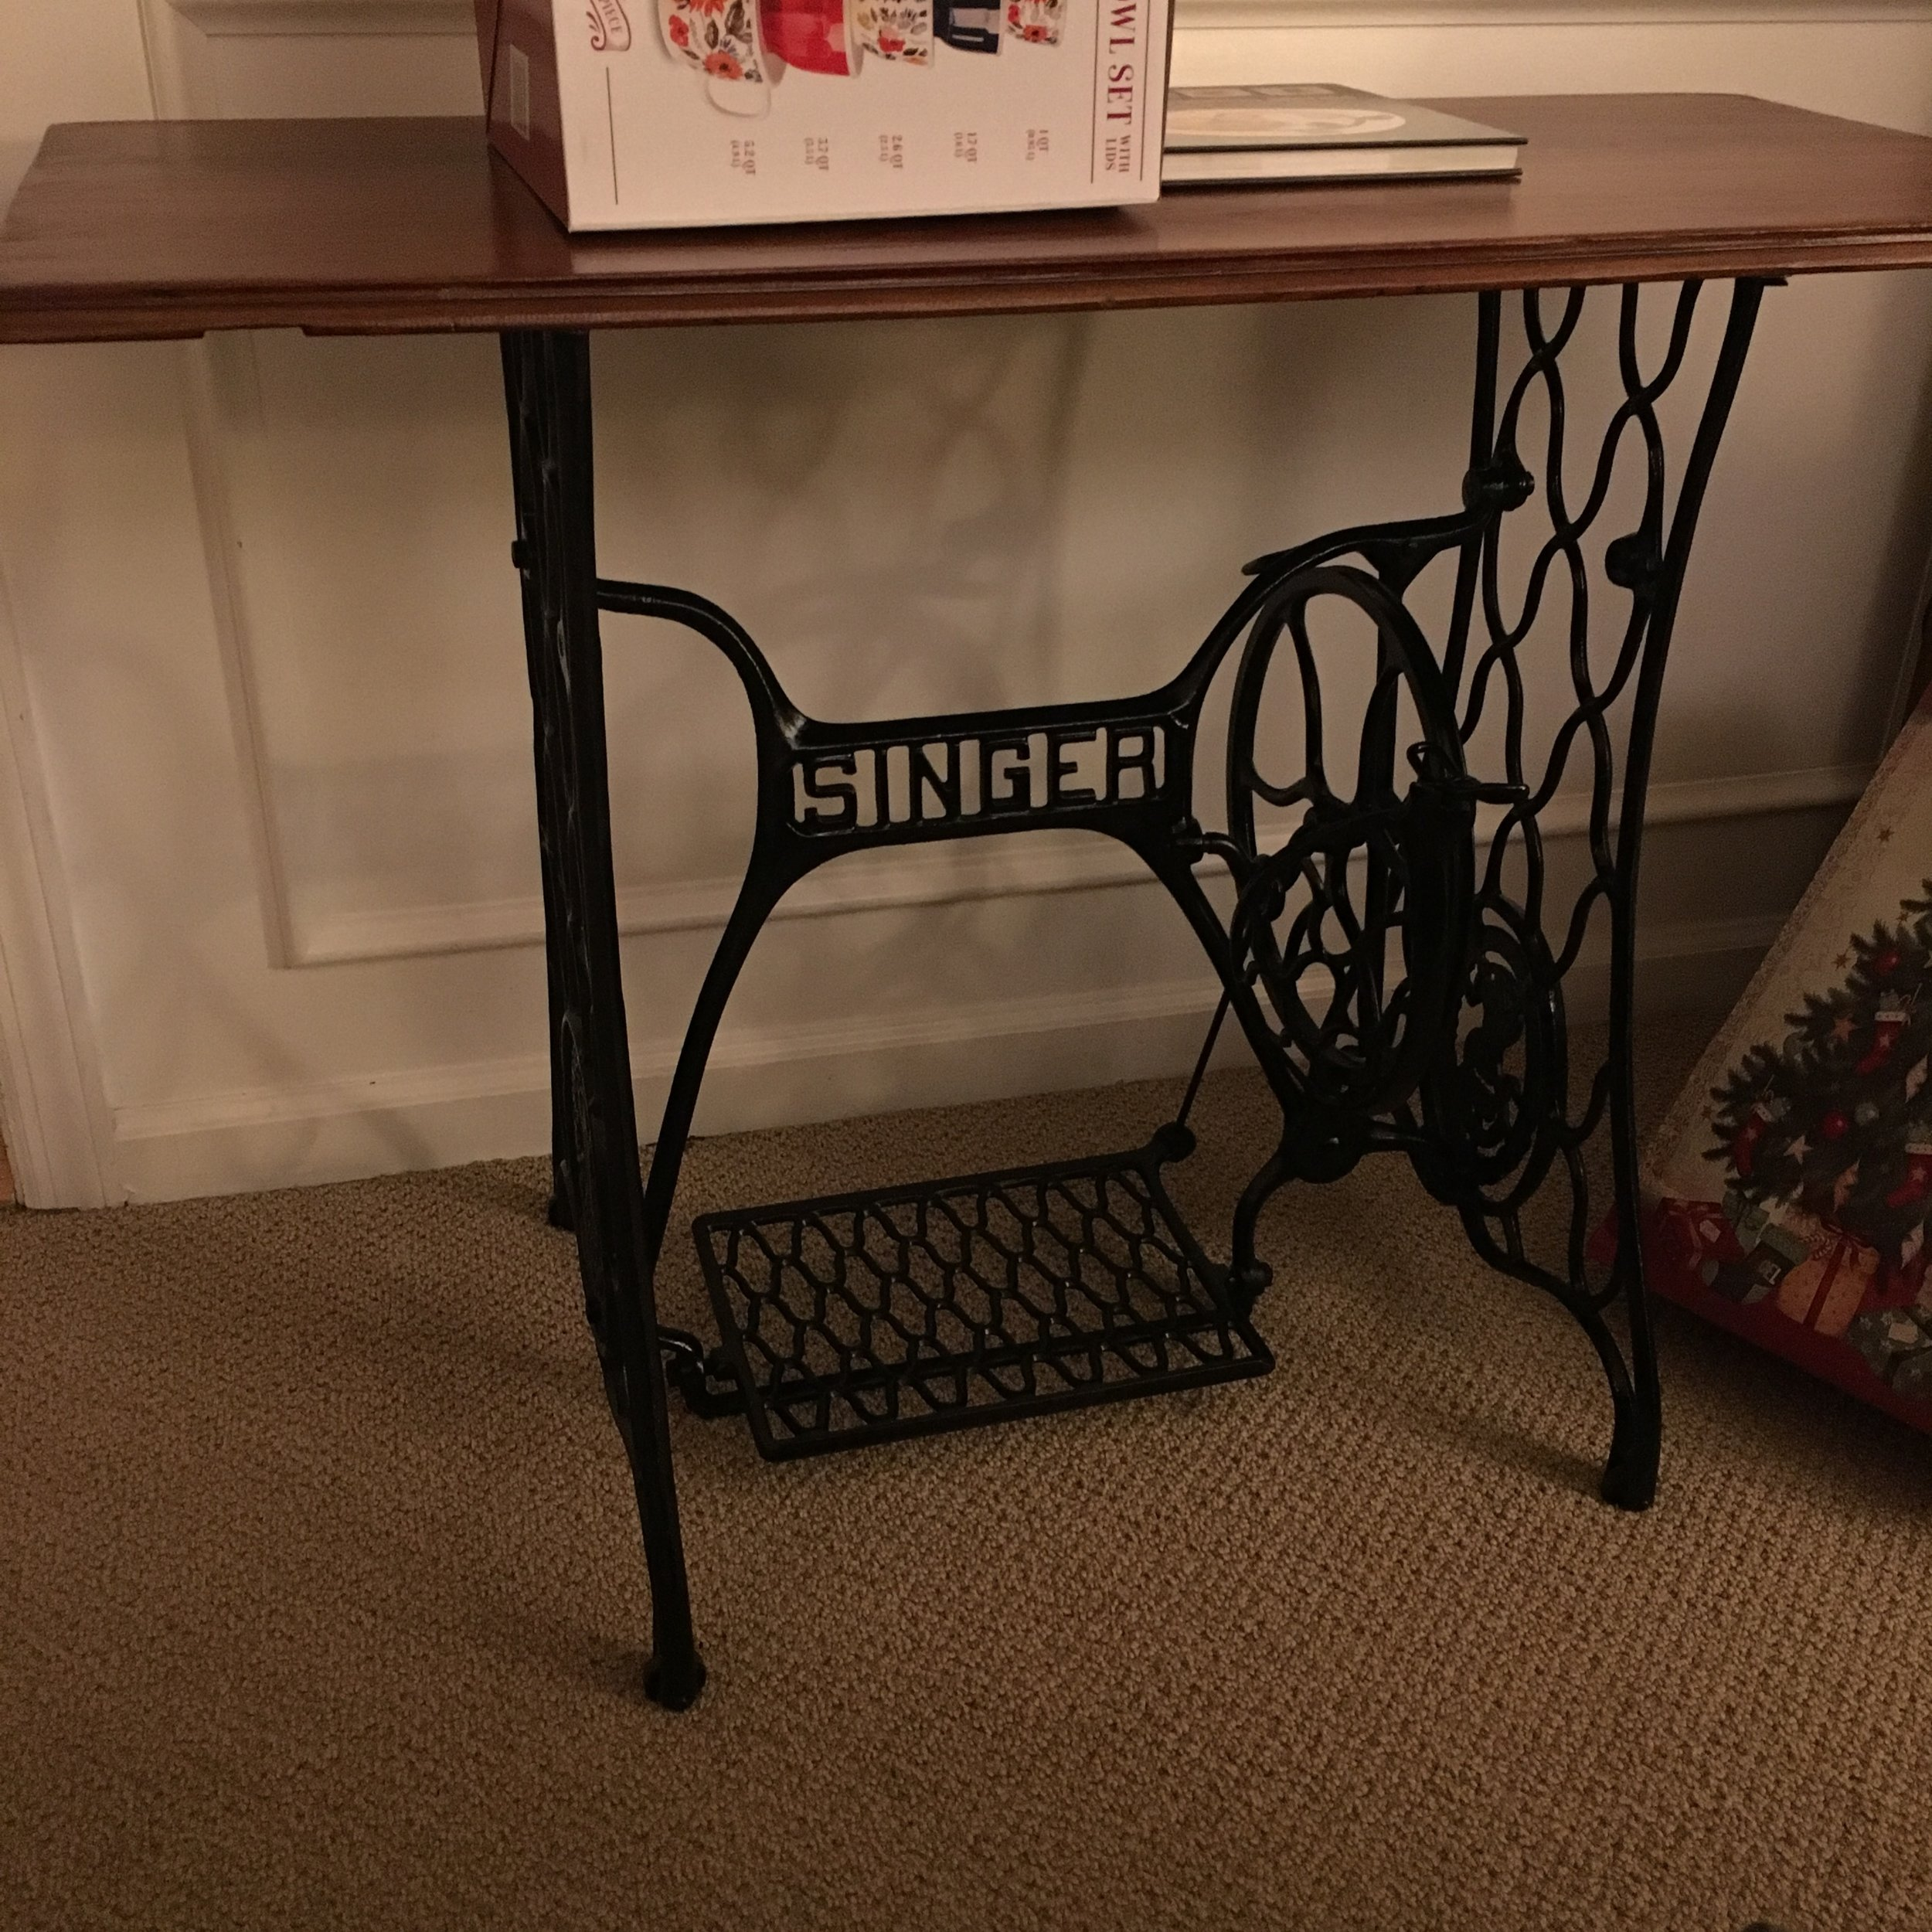 Combining an antique table top and a family heirloom? Smart choice, Dad. Smart. Choice.